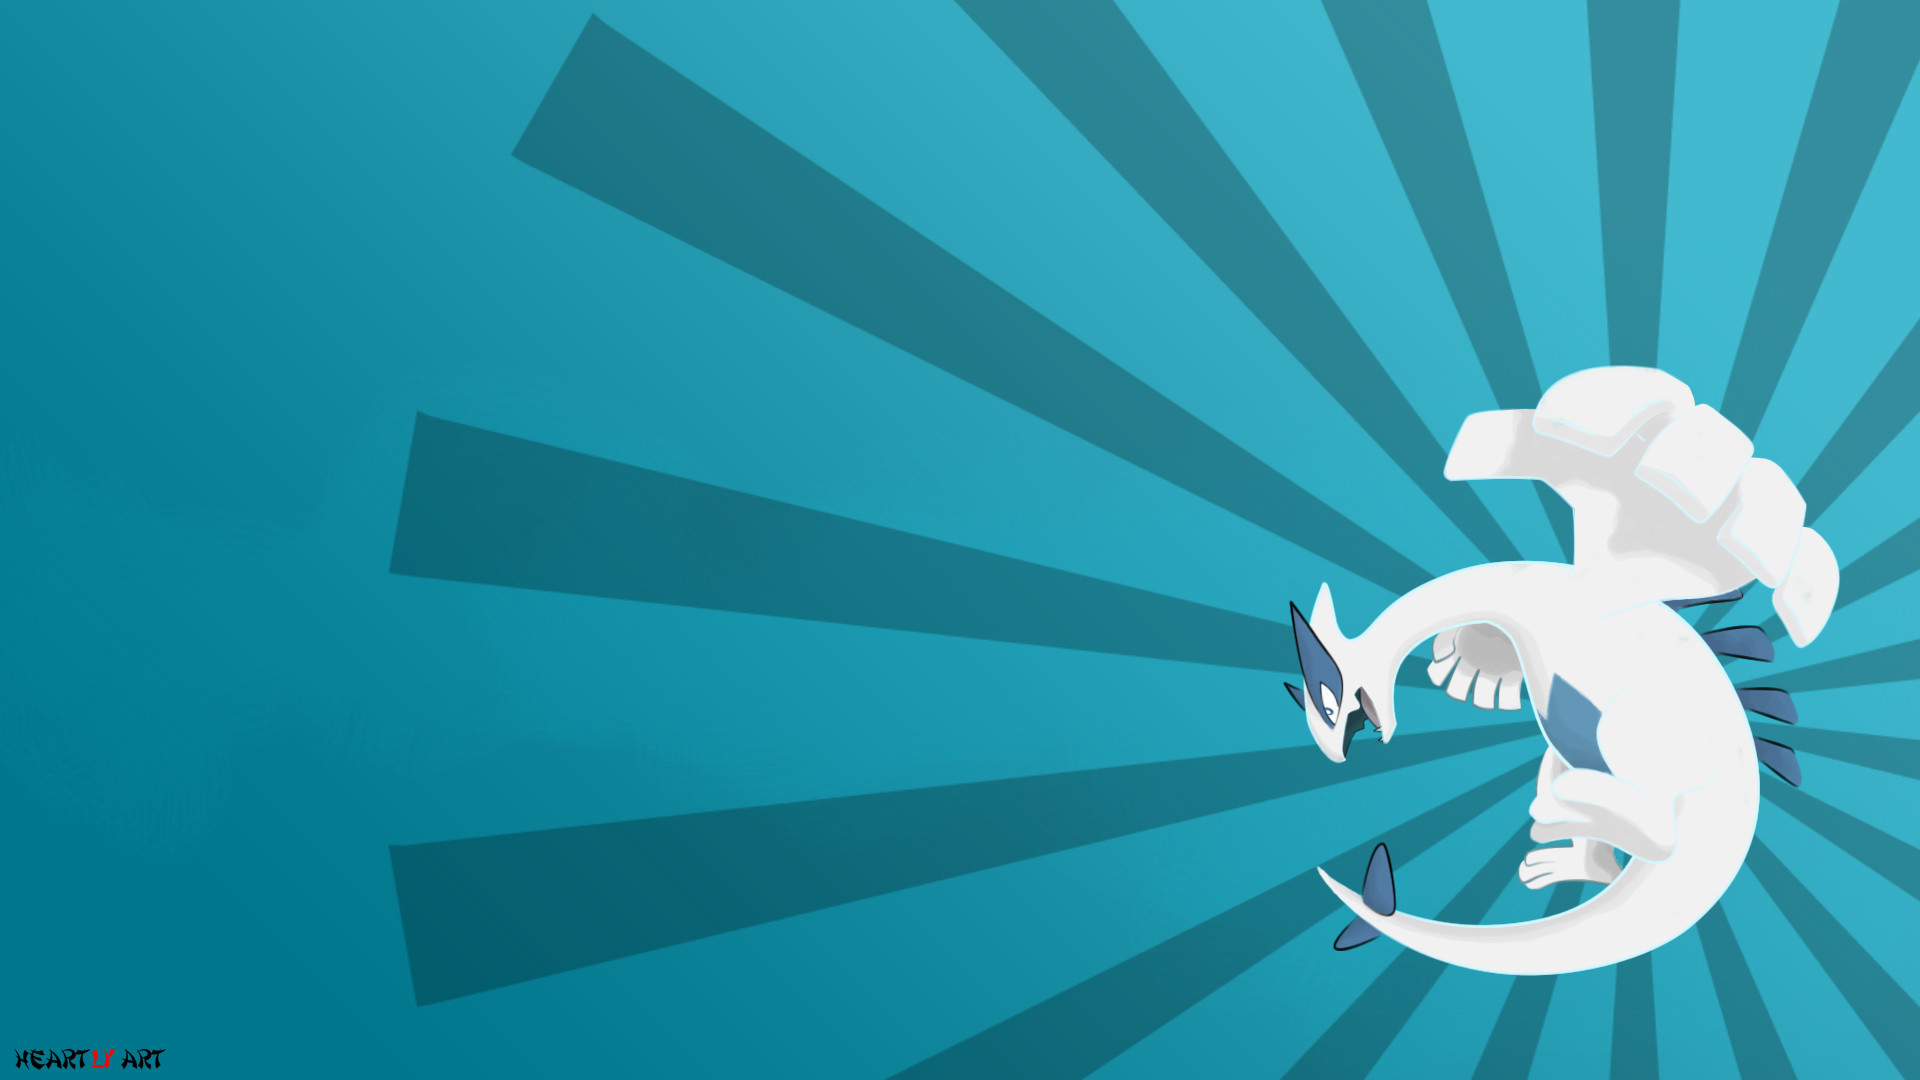 Res: 1920x1080, Lugia Wallpaper by HeartlyArt Lugia Wallpaper by HeartlyArt